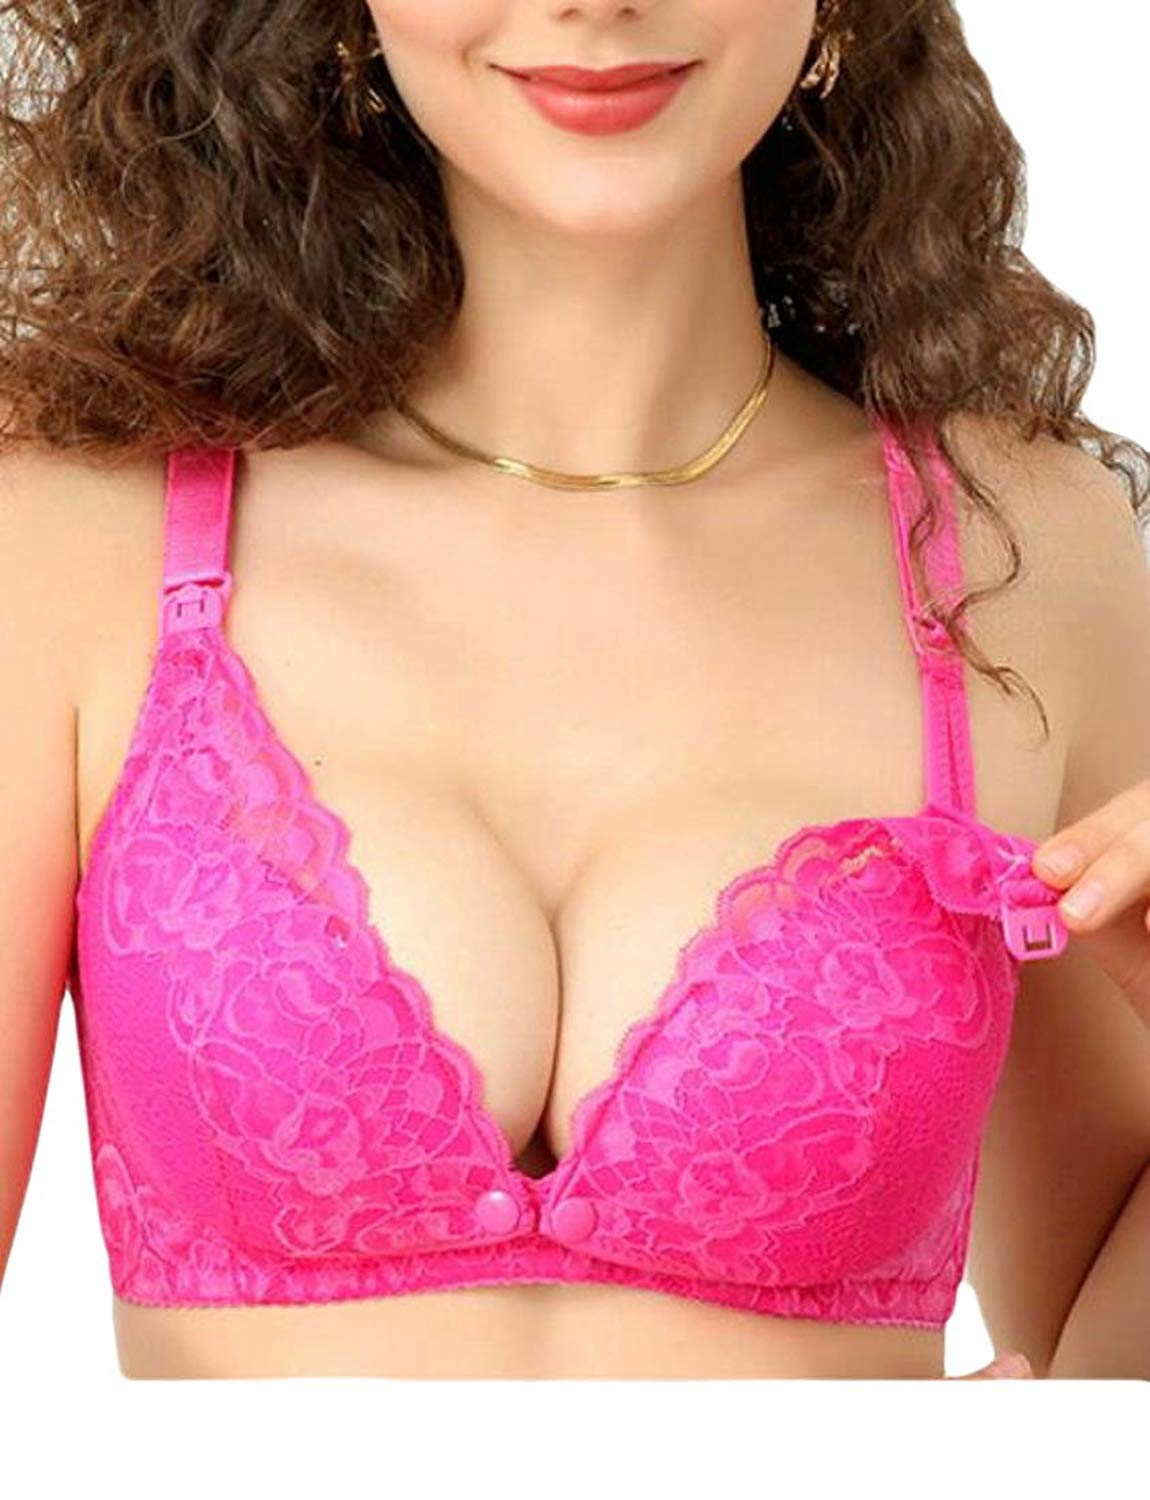 d767edfa783f4 Get Quotations · Hmarkt Womens Front Closure Nursing Full Figure Adjustable  Pregnancy Maternity Bras